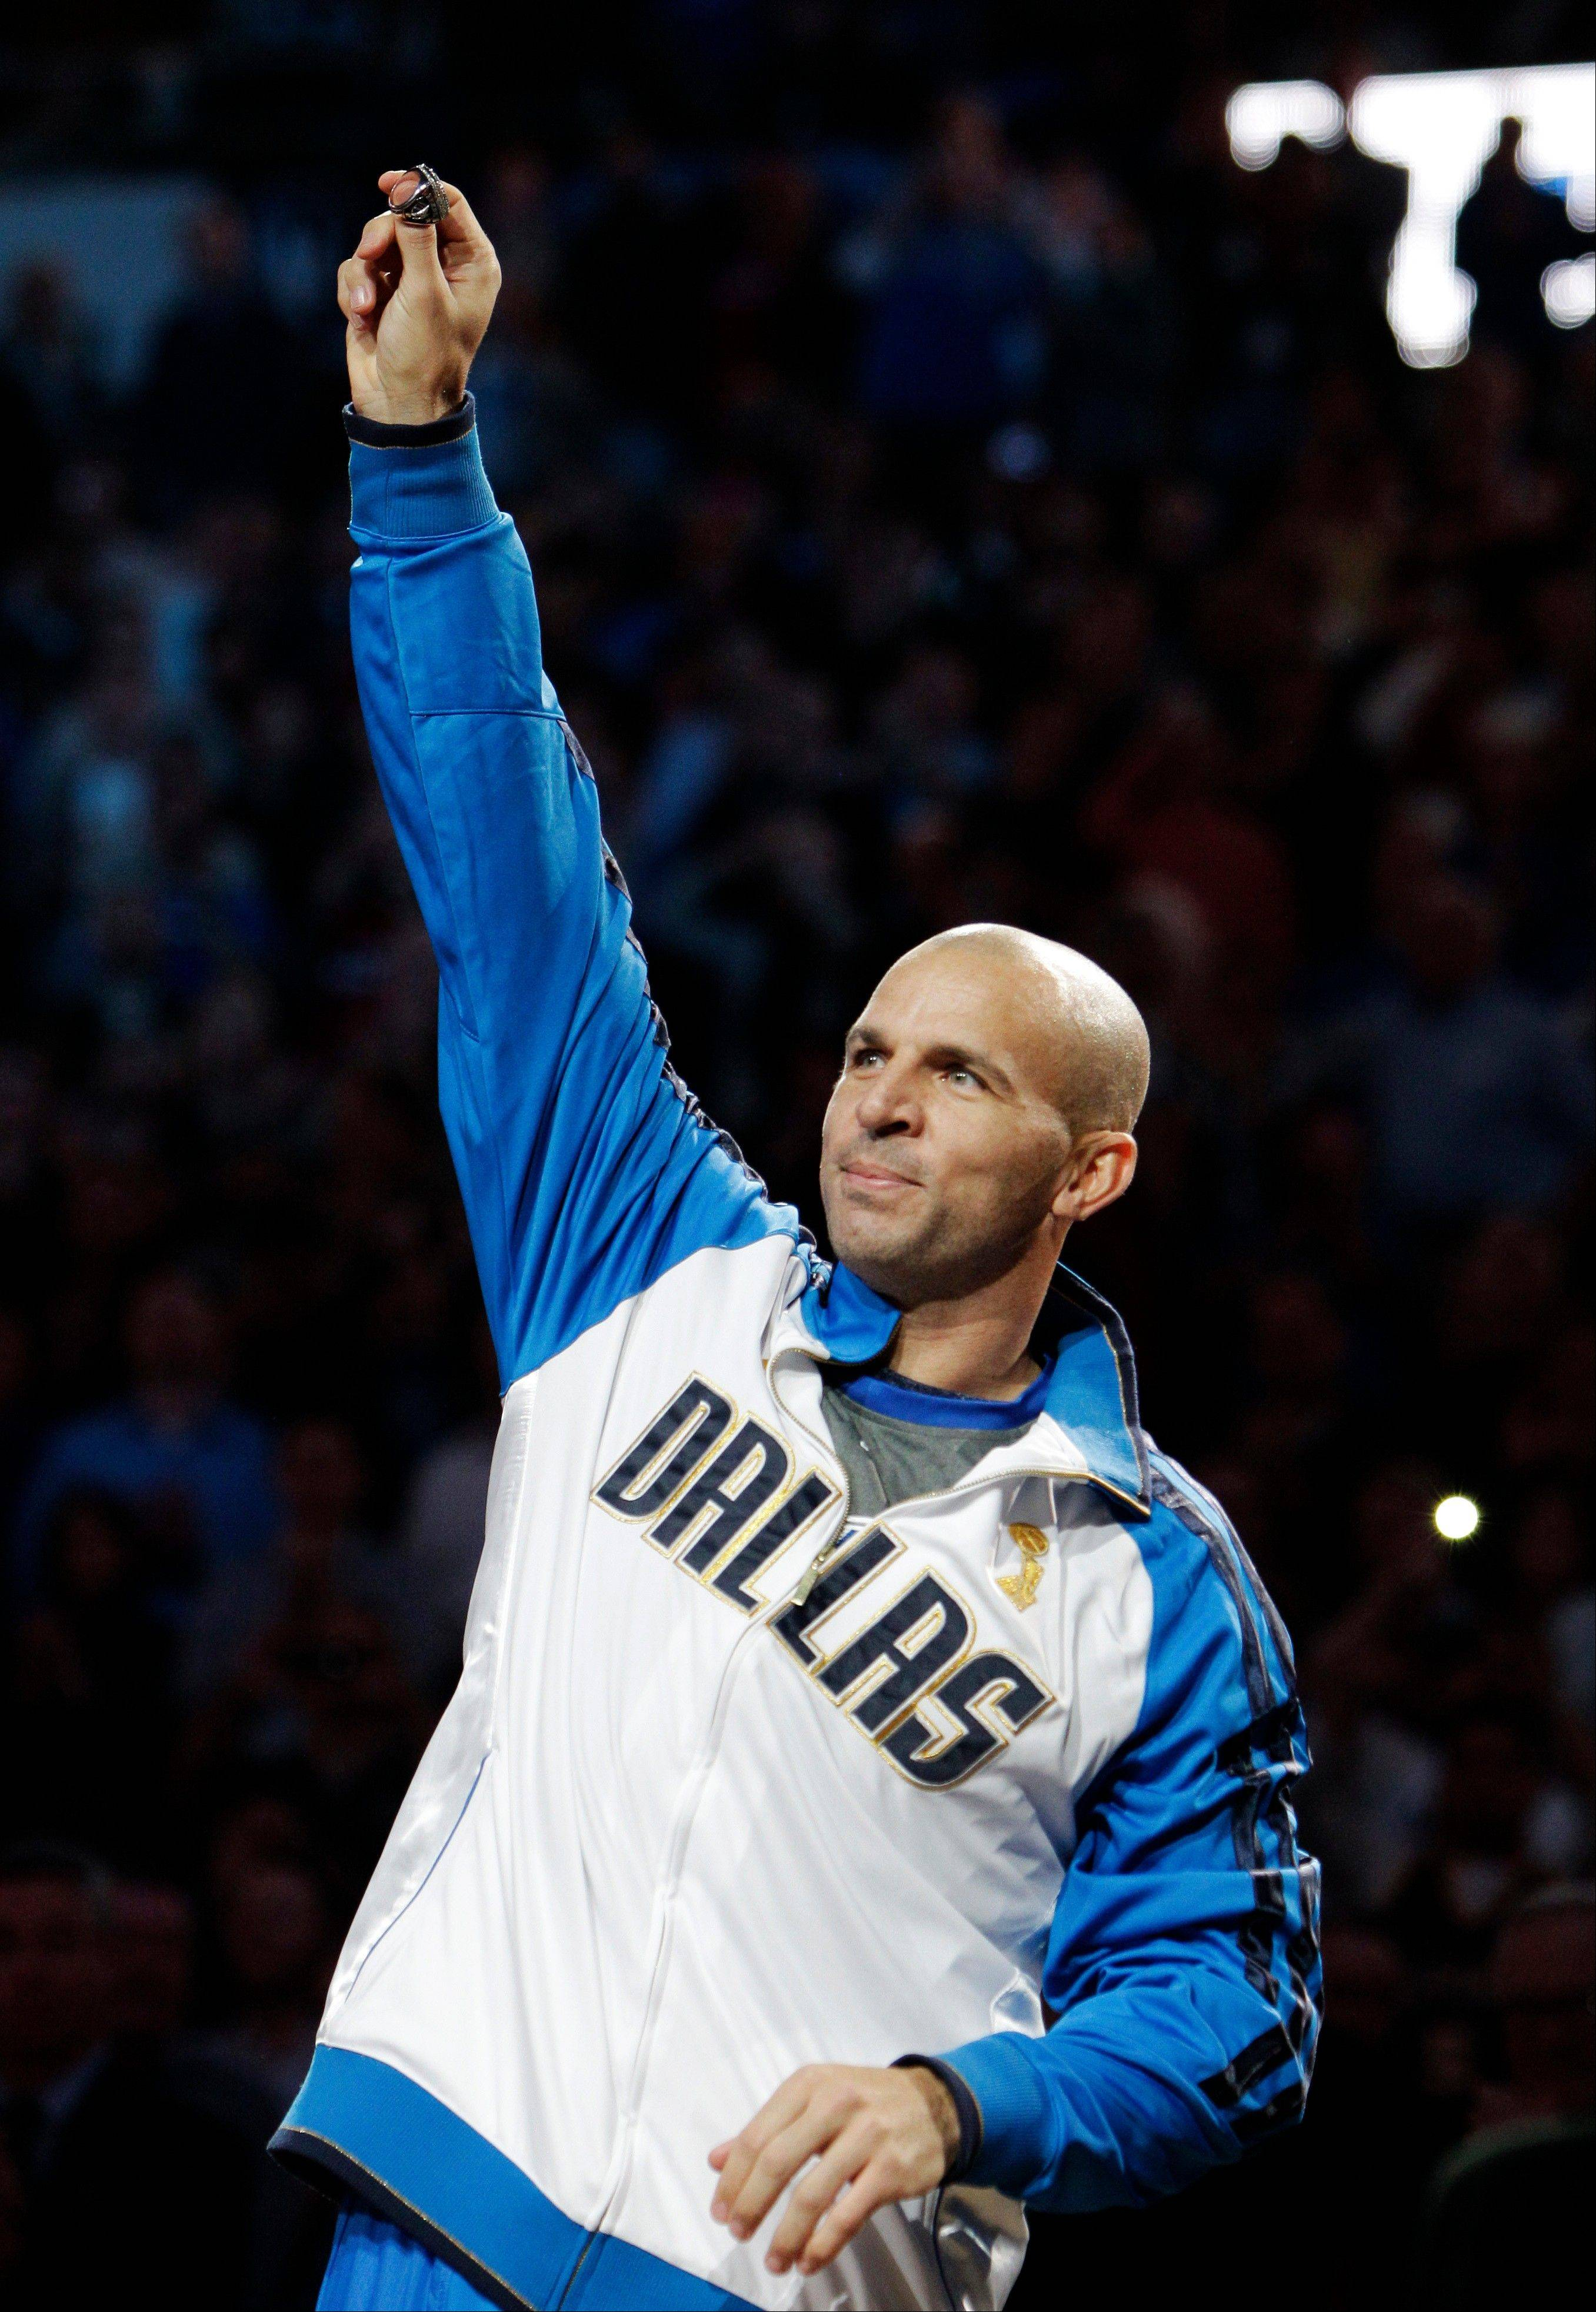 The Mavericks' Jason Kidd holds up his diamond-encrusted NBA championship ring before Wednesday night's home game against Minnesota